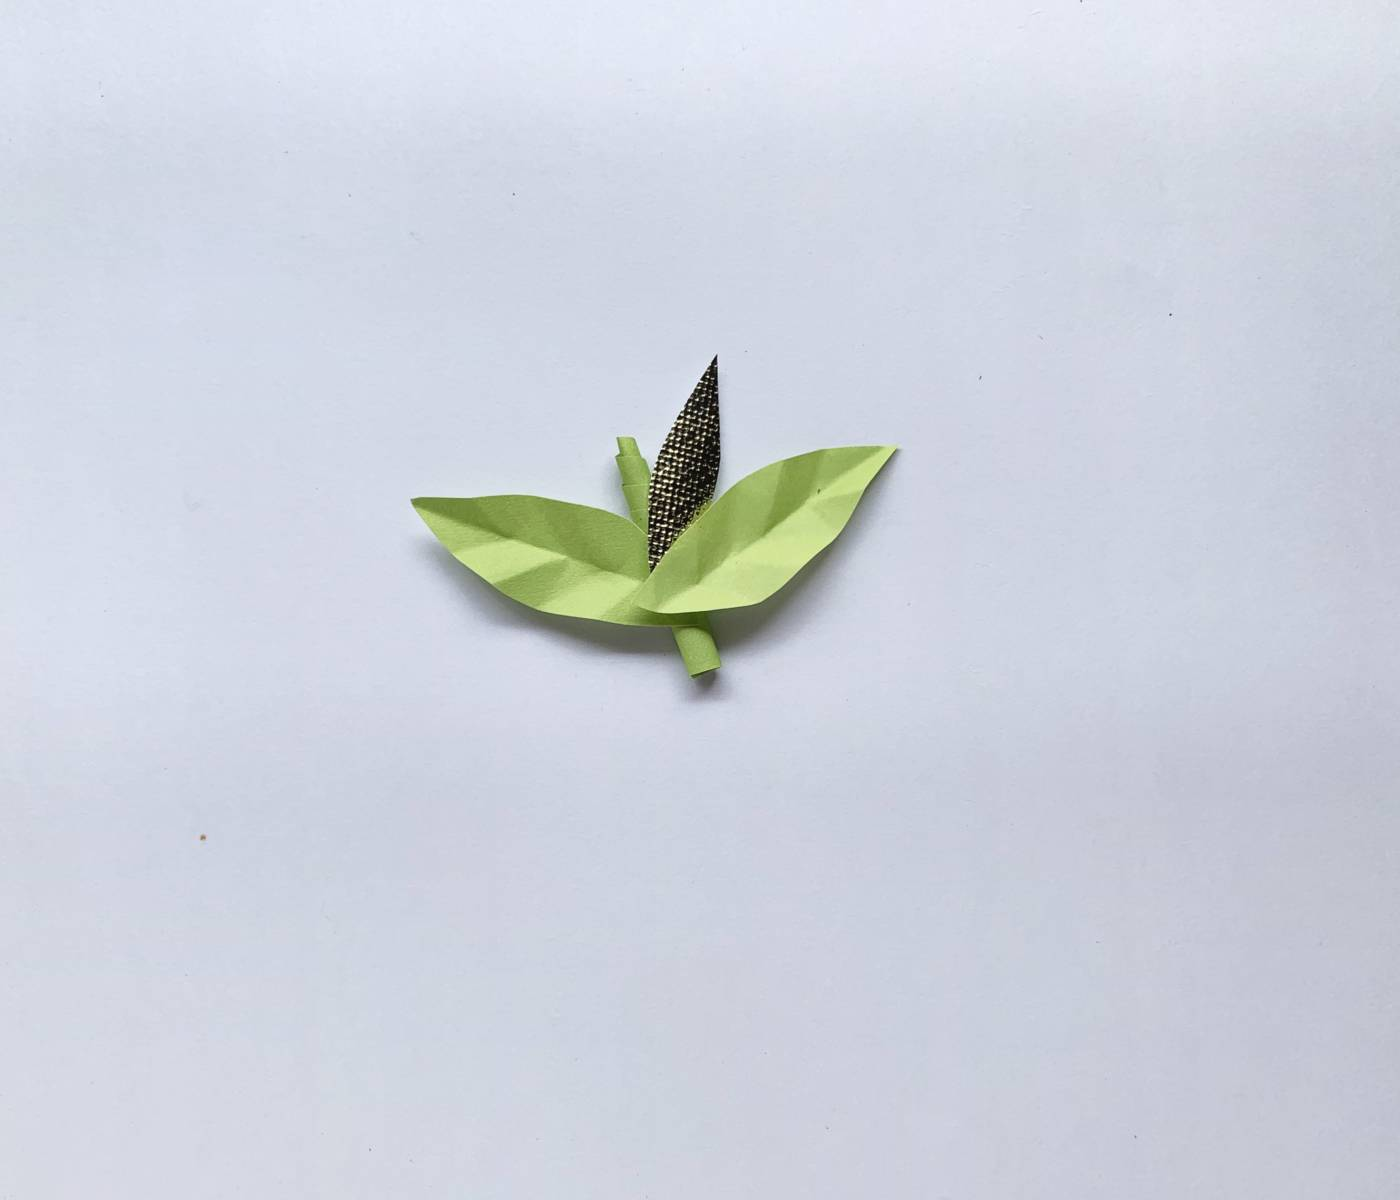 a fake stem with paper leaves on it